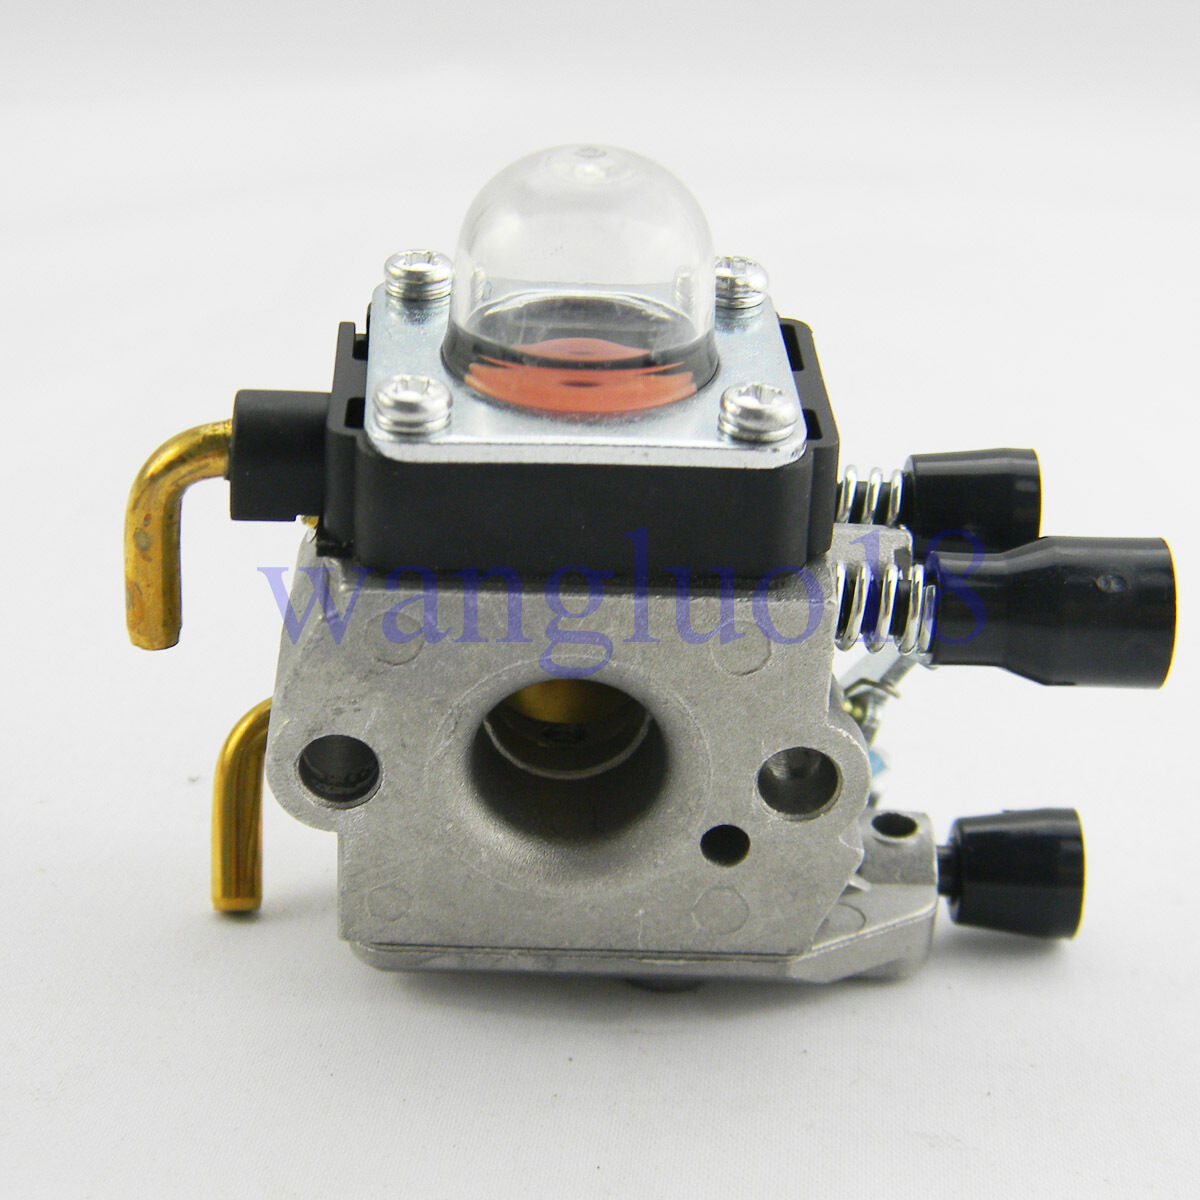 new carb carburetor fits stihl trimmer fs38 fs45 fs46 fs55 fs55r fs55rc km55 cad. Black Bedroom Furniture Sets. Home Design Ideas